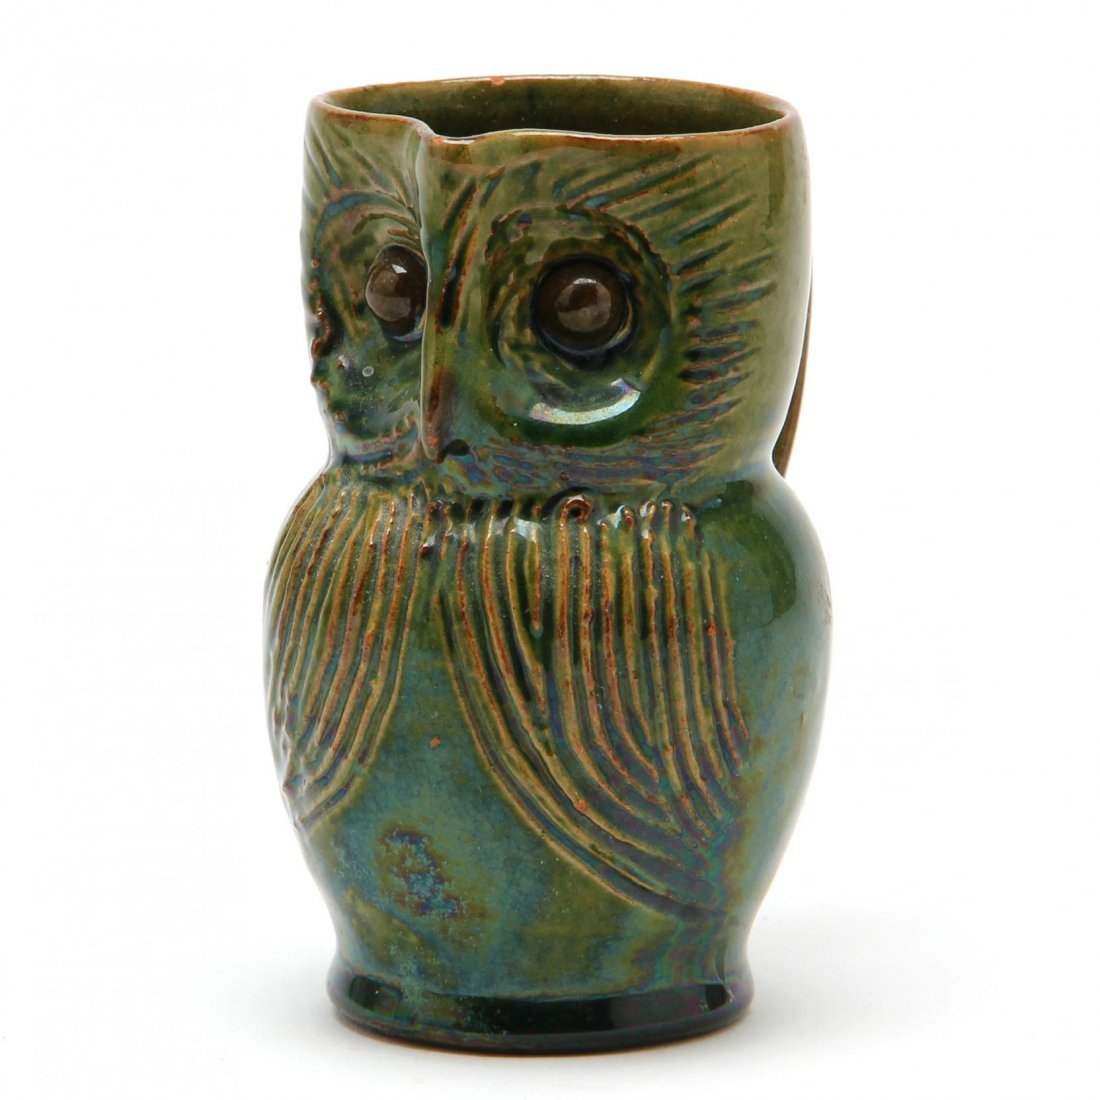 Diminutive Owl Pottery Pitcher